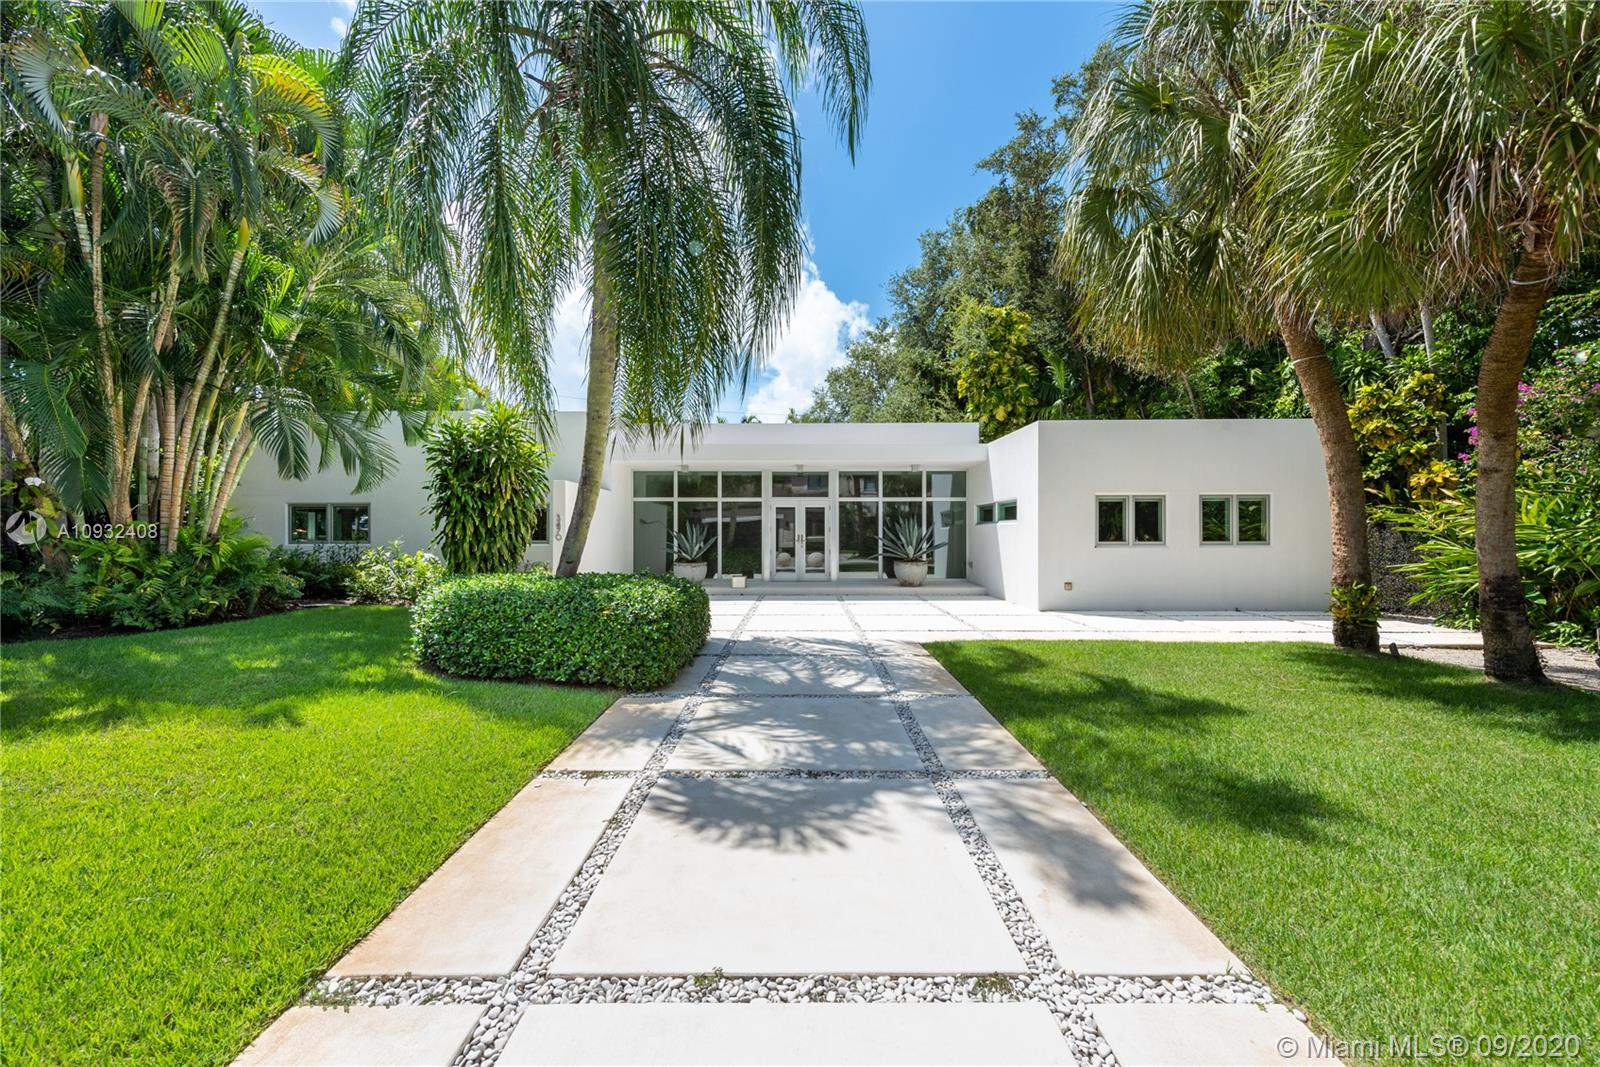 """Contemporary Miami modern home is the ideal combination of modern architecture simplicity and an indoor/outdoor lifestyle. An open concept of sophisticated living space offers an abundance of natural light and sublime pool views. A glass backsplash with customized stainless steel cabinetry and a large waterfall countertop sets a sleek tone in the kitchen. This home features 4 bedrooms, 4.5 baths, high impact Clerestory windows, and polished concrete floors throughout. Nestled in the coveted 24/hour guard-gated enclave of """"The Moorings"""" a bayfront community with a private marina, 3 parks, and direct ocean access. Walk or bike to Downtown Grove Restaurants, shops, and some of the best private schools."""